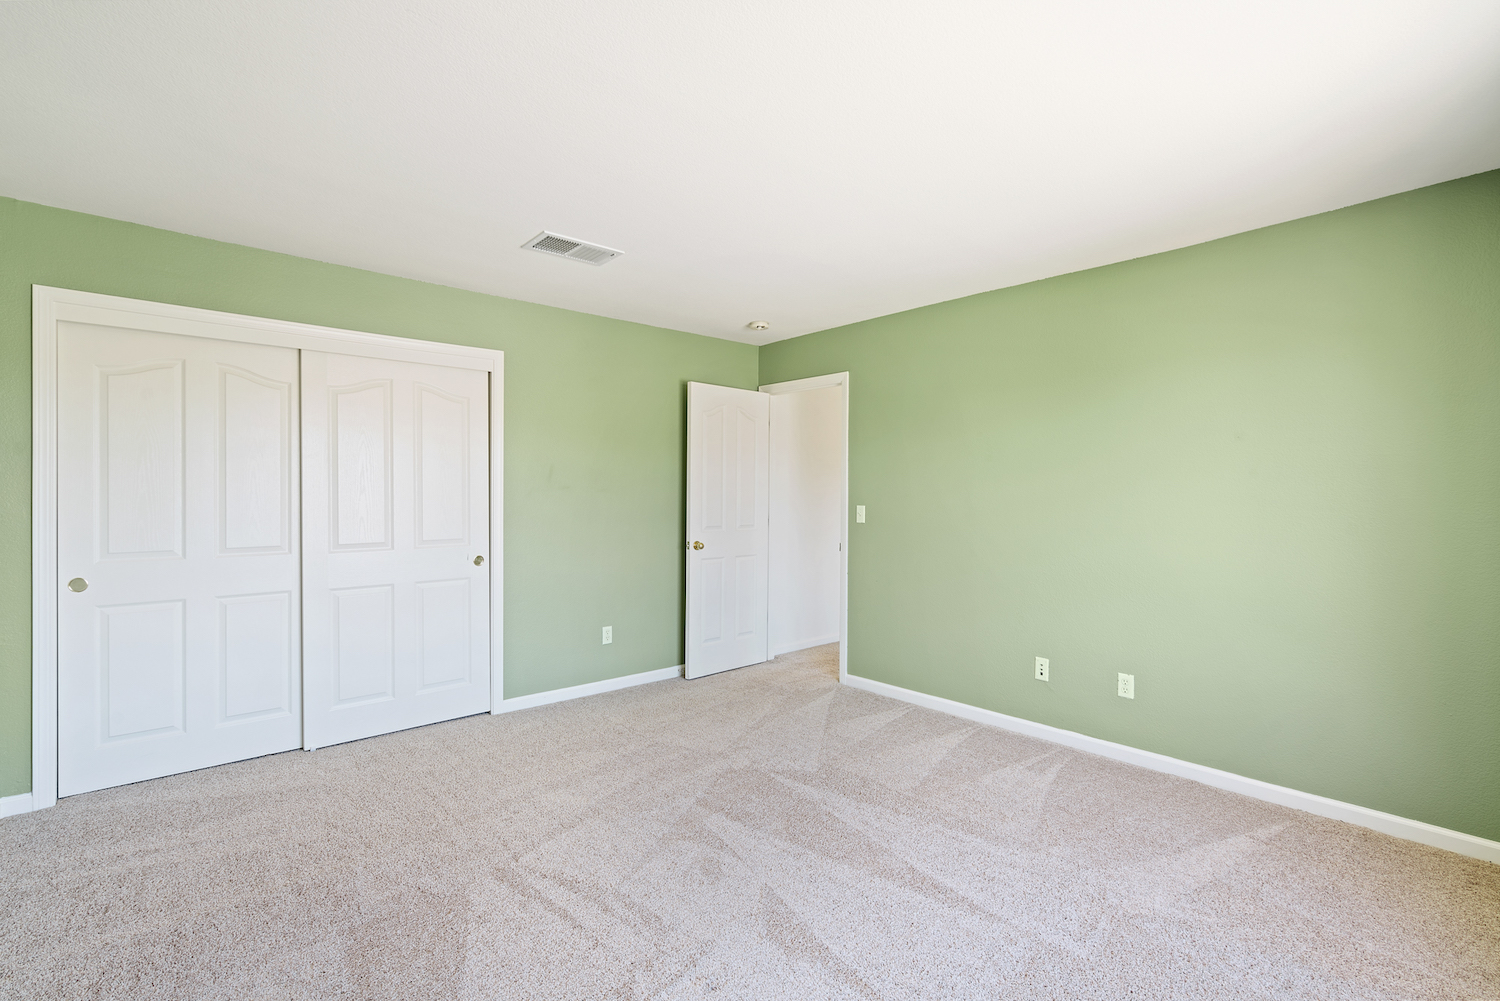 2241 glenview dr - upstairs bedroom 2